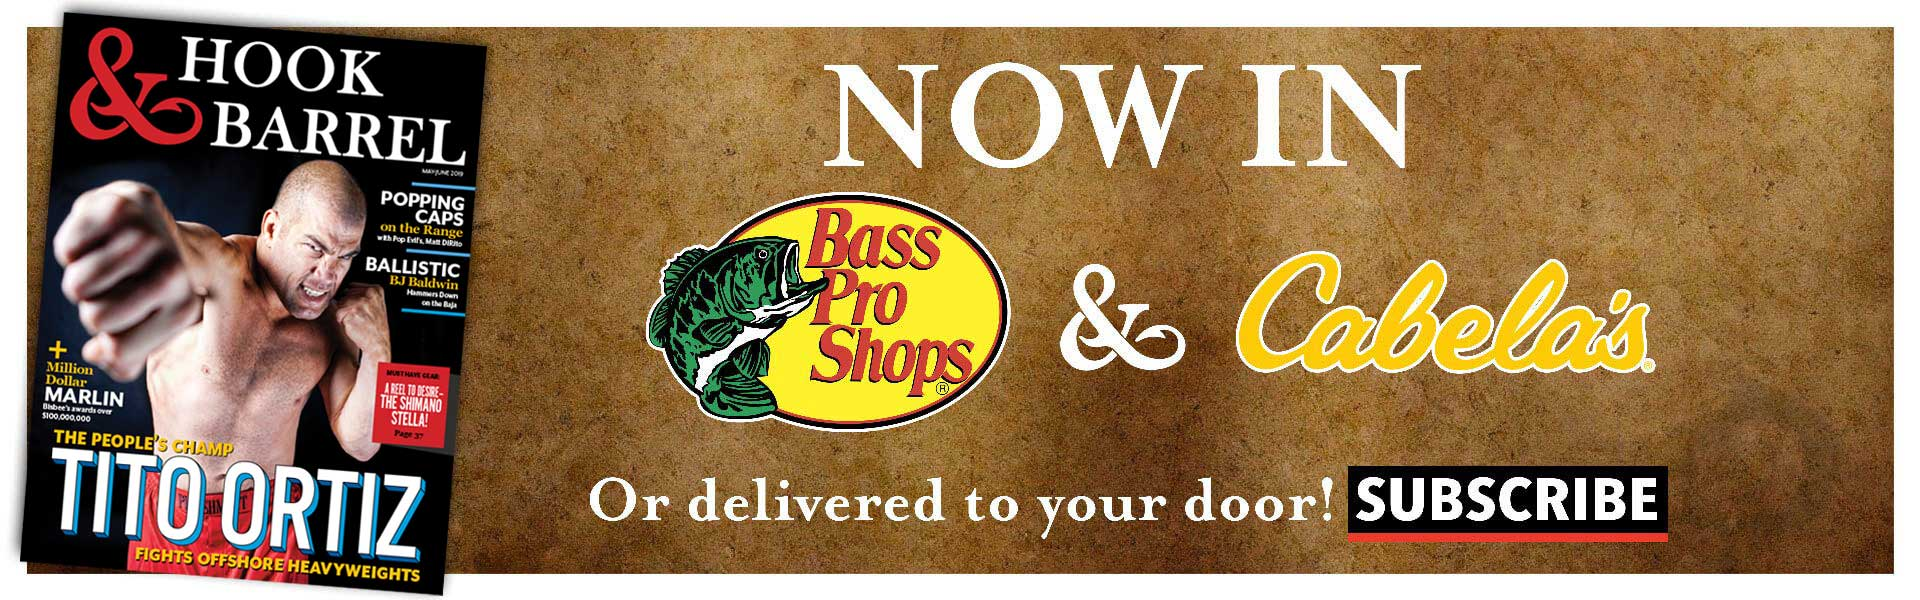 Hook and Barrel Magazine is available in Bass Pro Shops and Cabela's